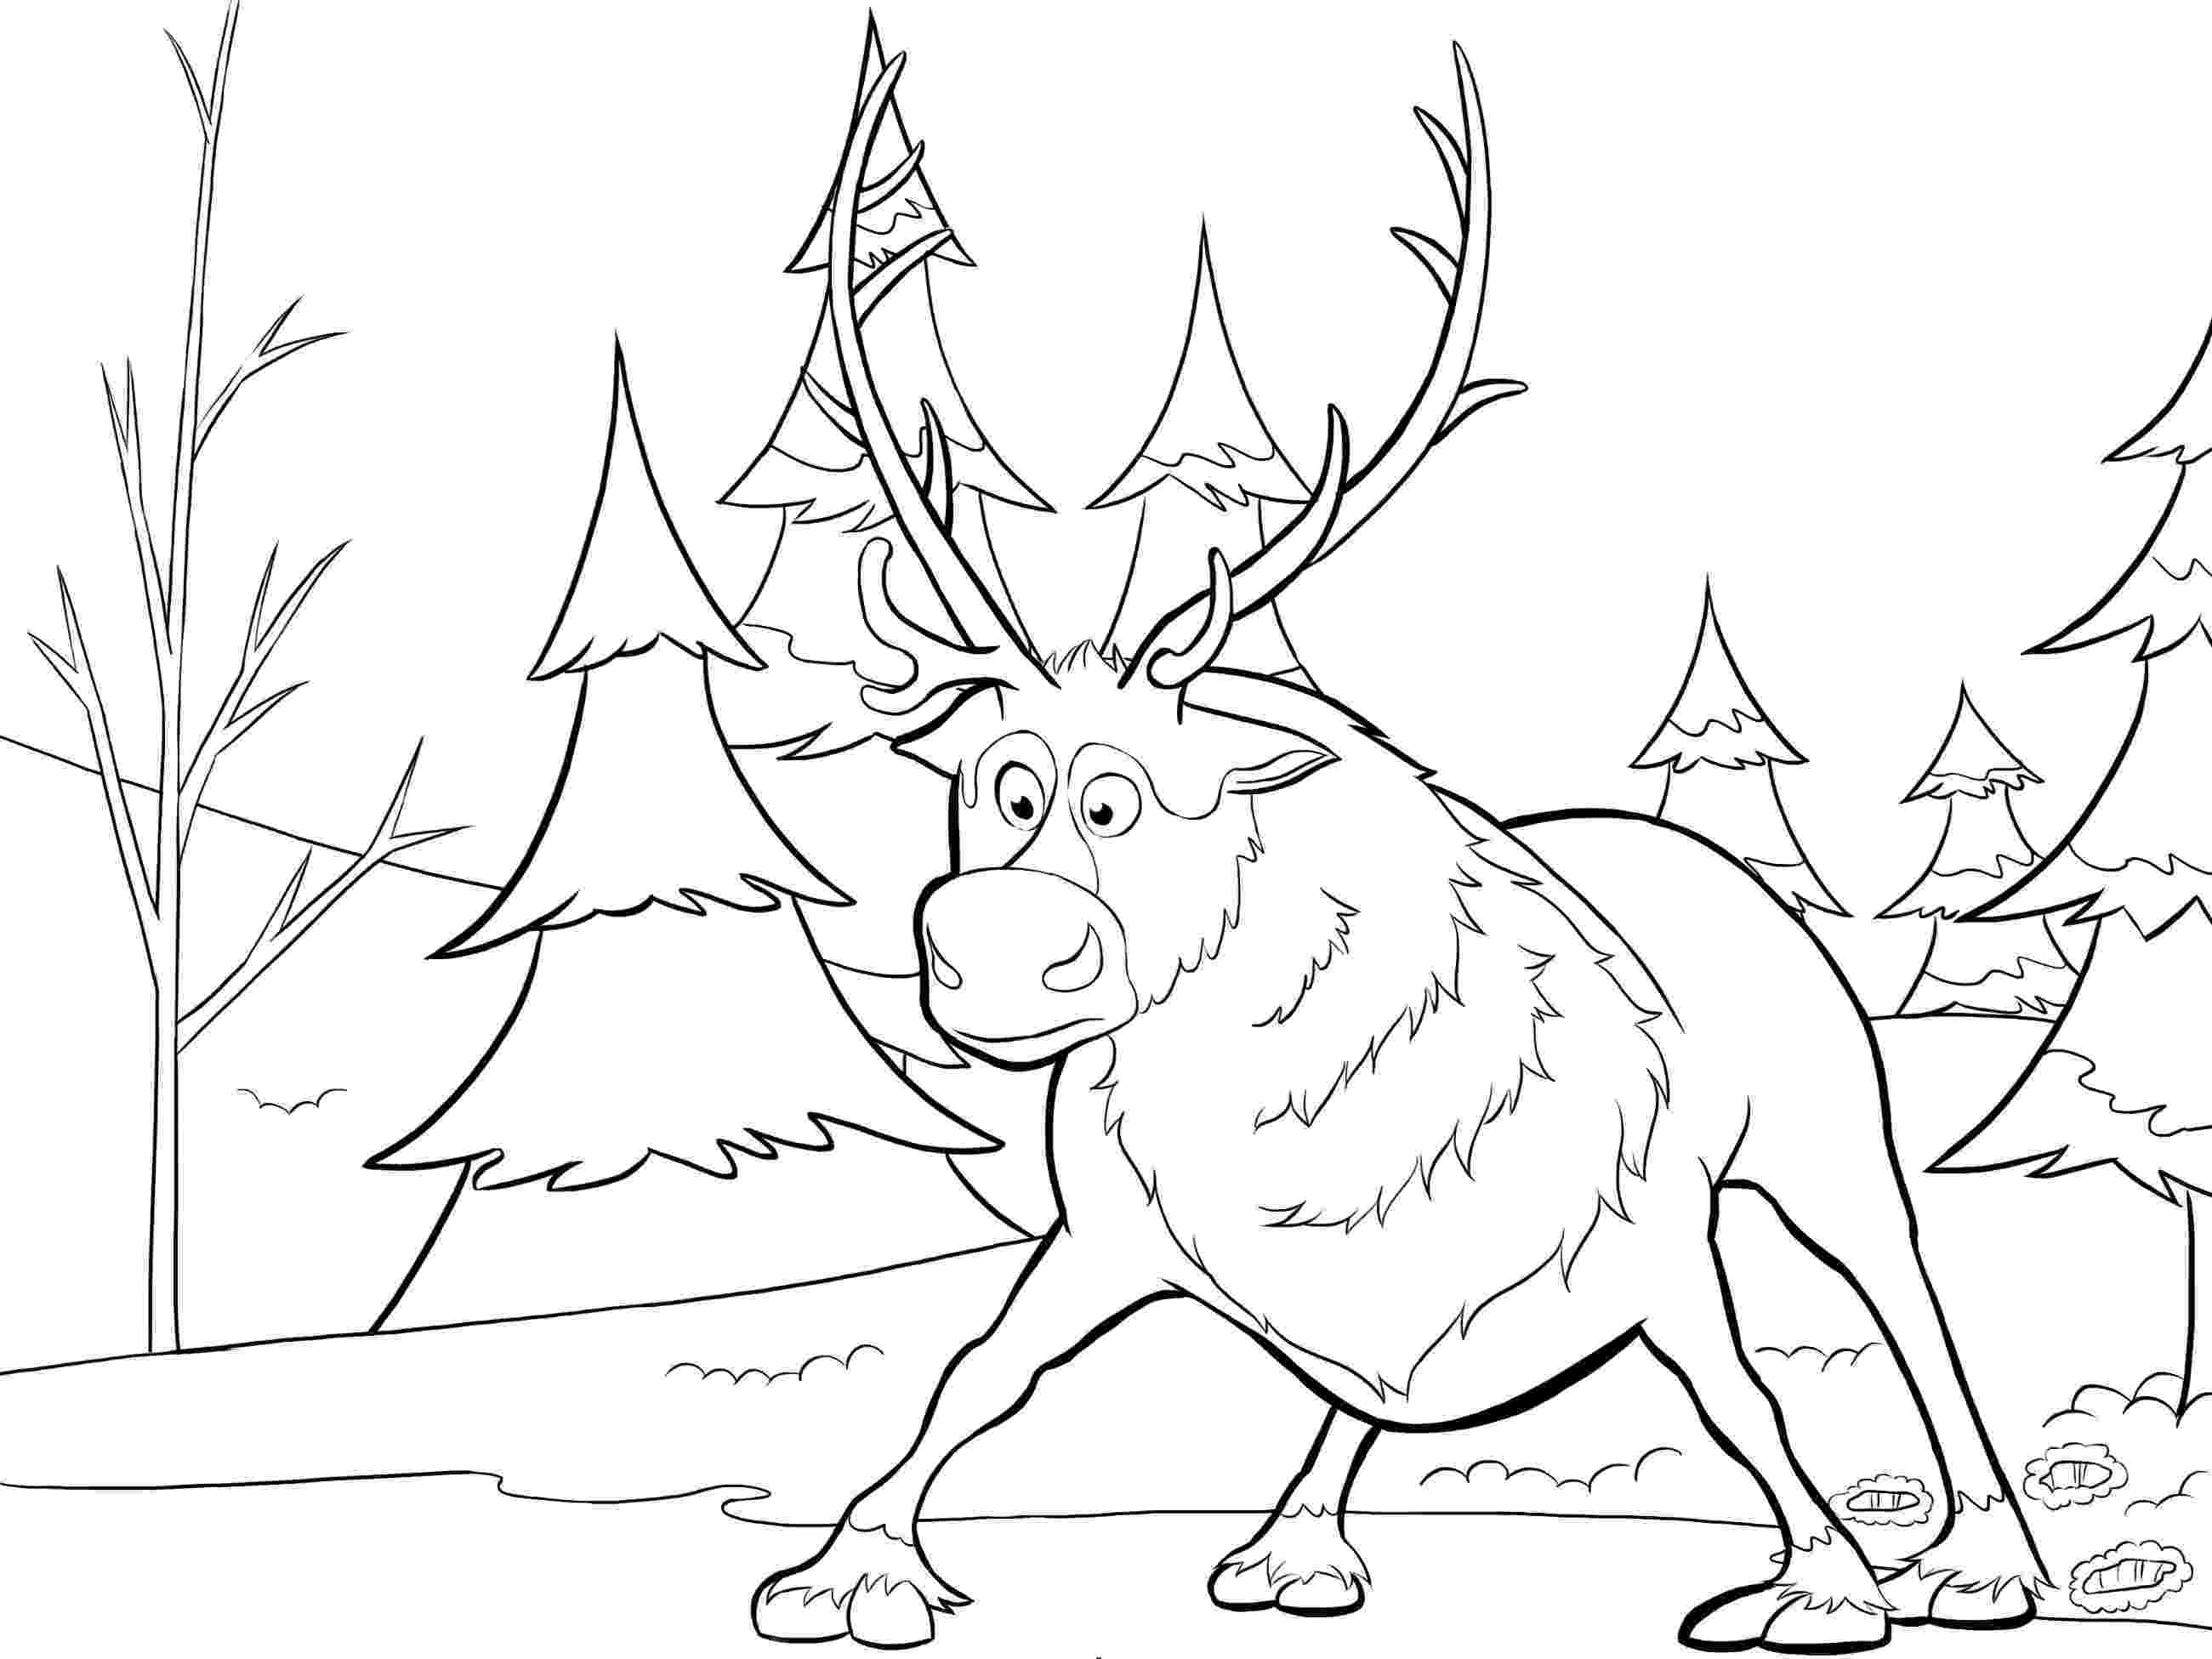 free printable colouring pages frozen free frozen printable coloring activity pages plus free colouring free pages frozen printable